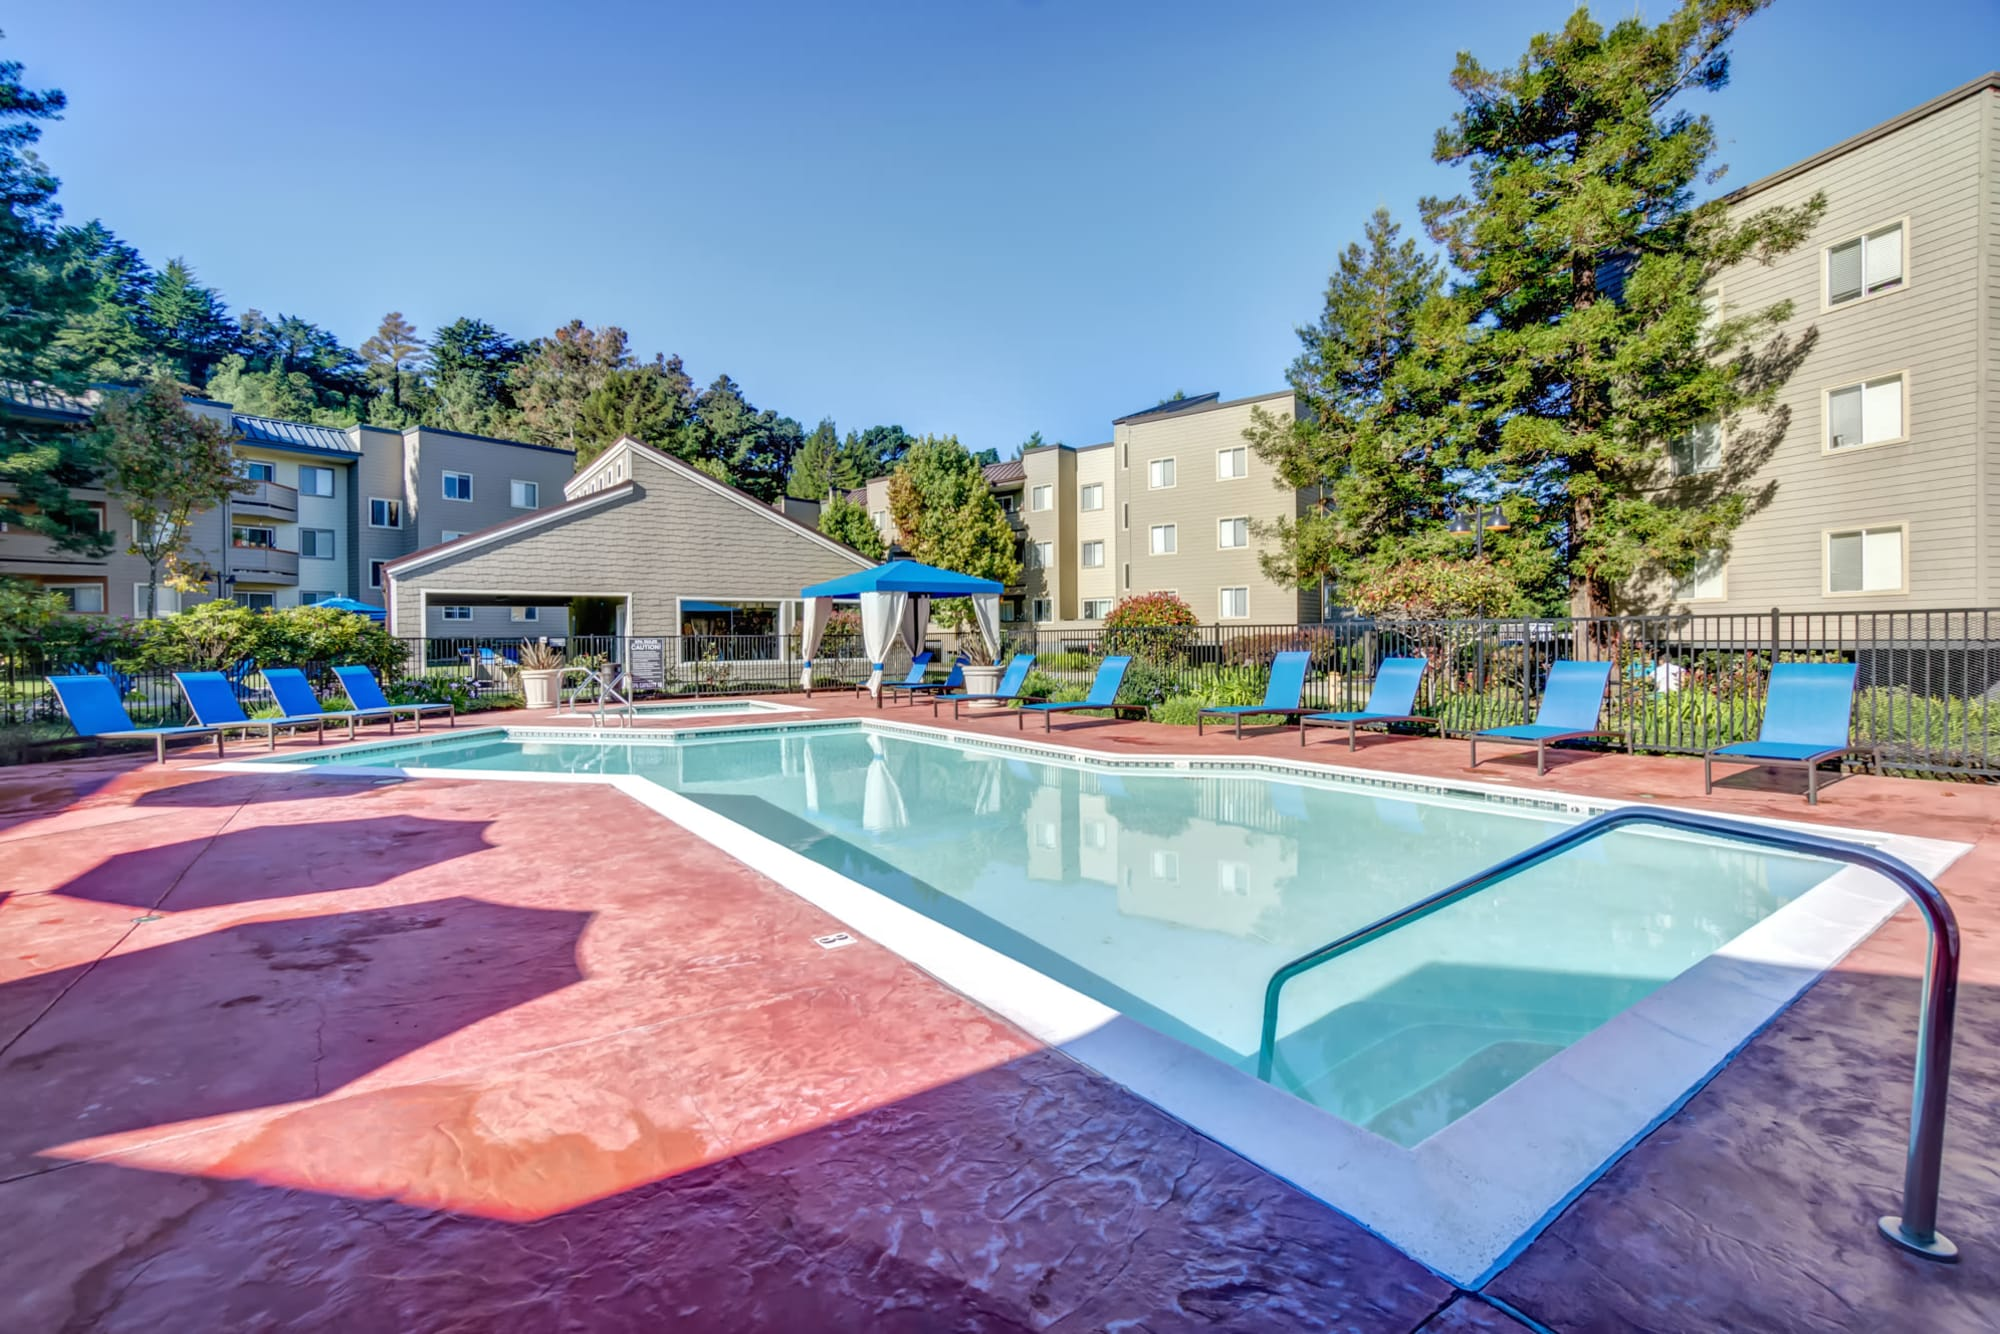 The pool and lounge chairs on a sunny, warm day at Serramonte Ridge Apartment Homes in Daly City, California